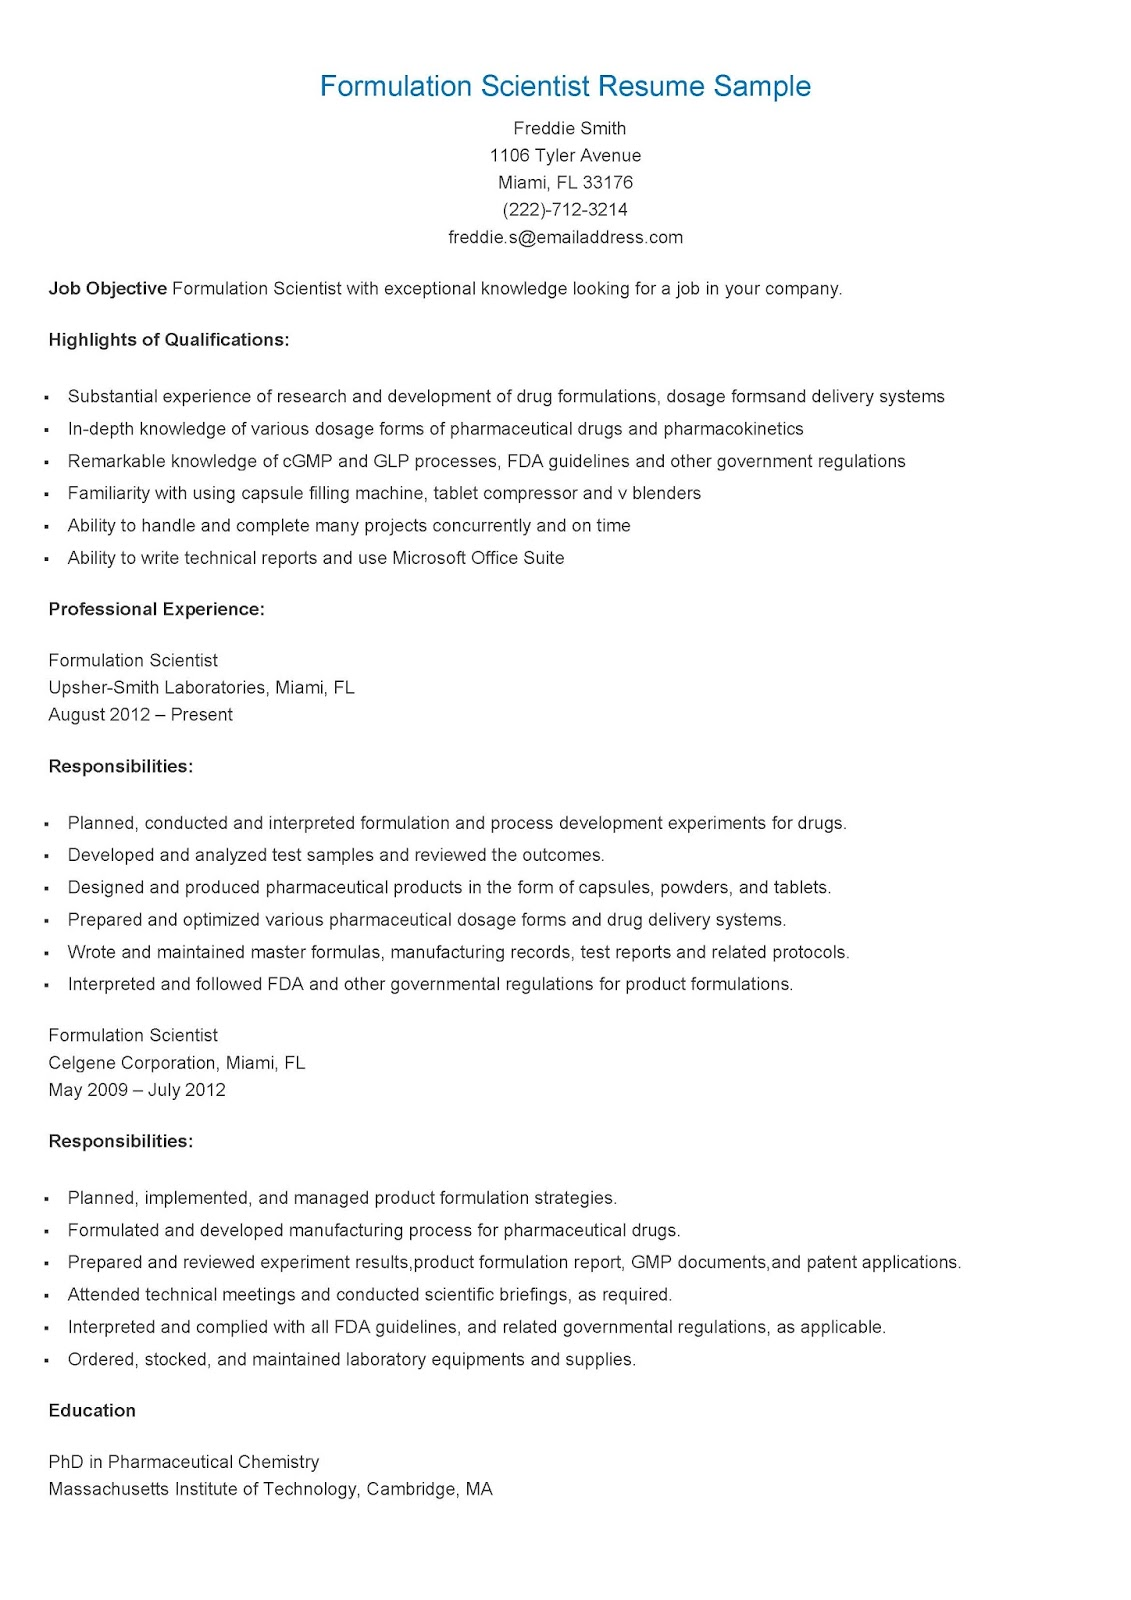 formulation scientist resume sample resume samples